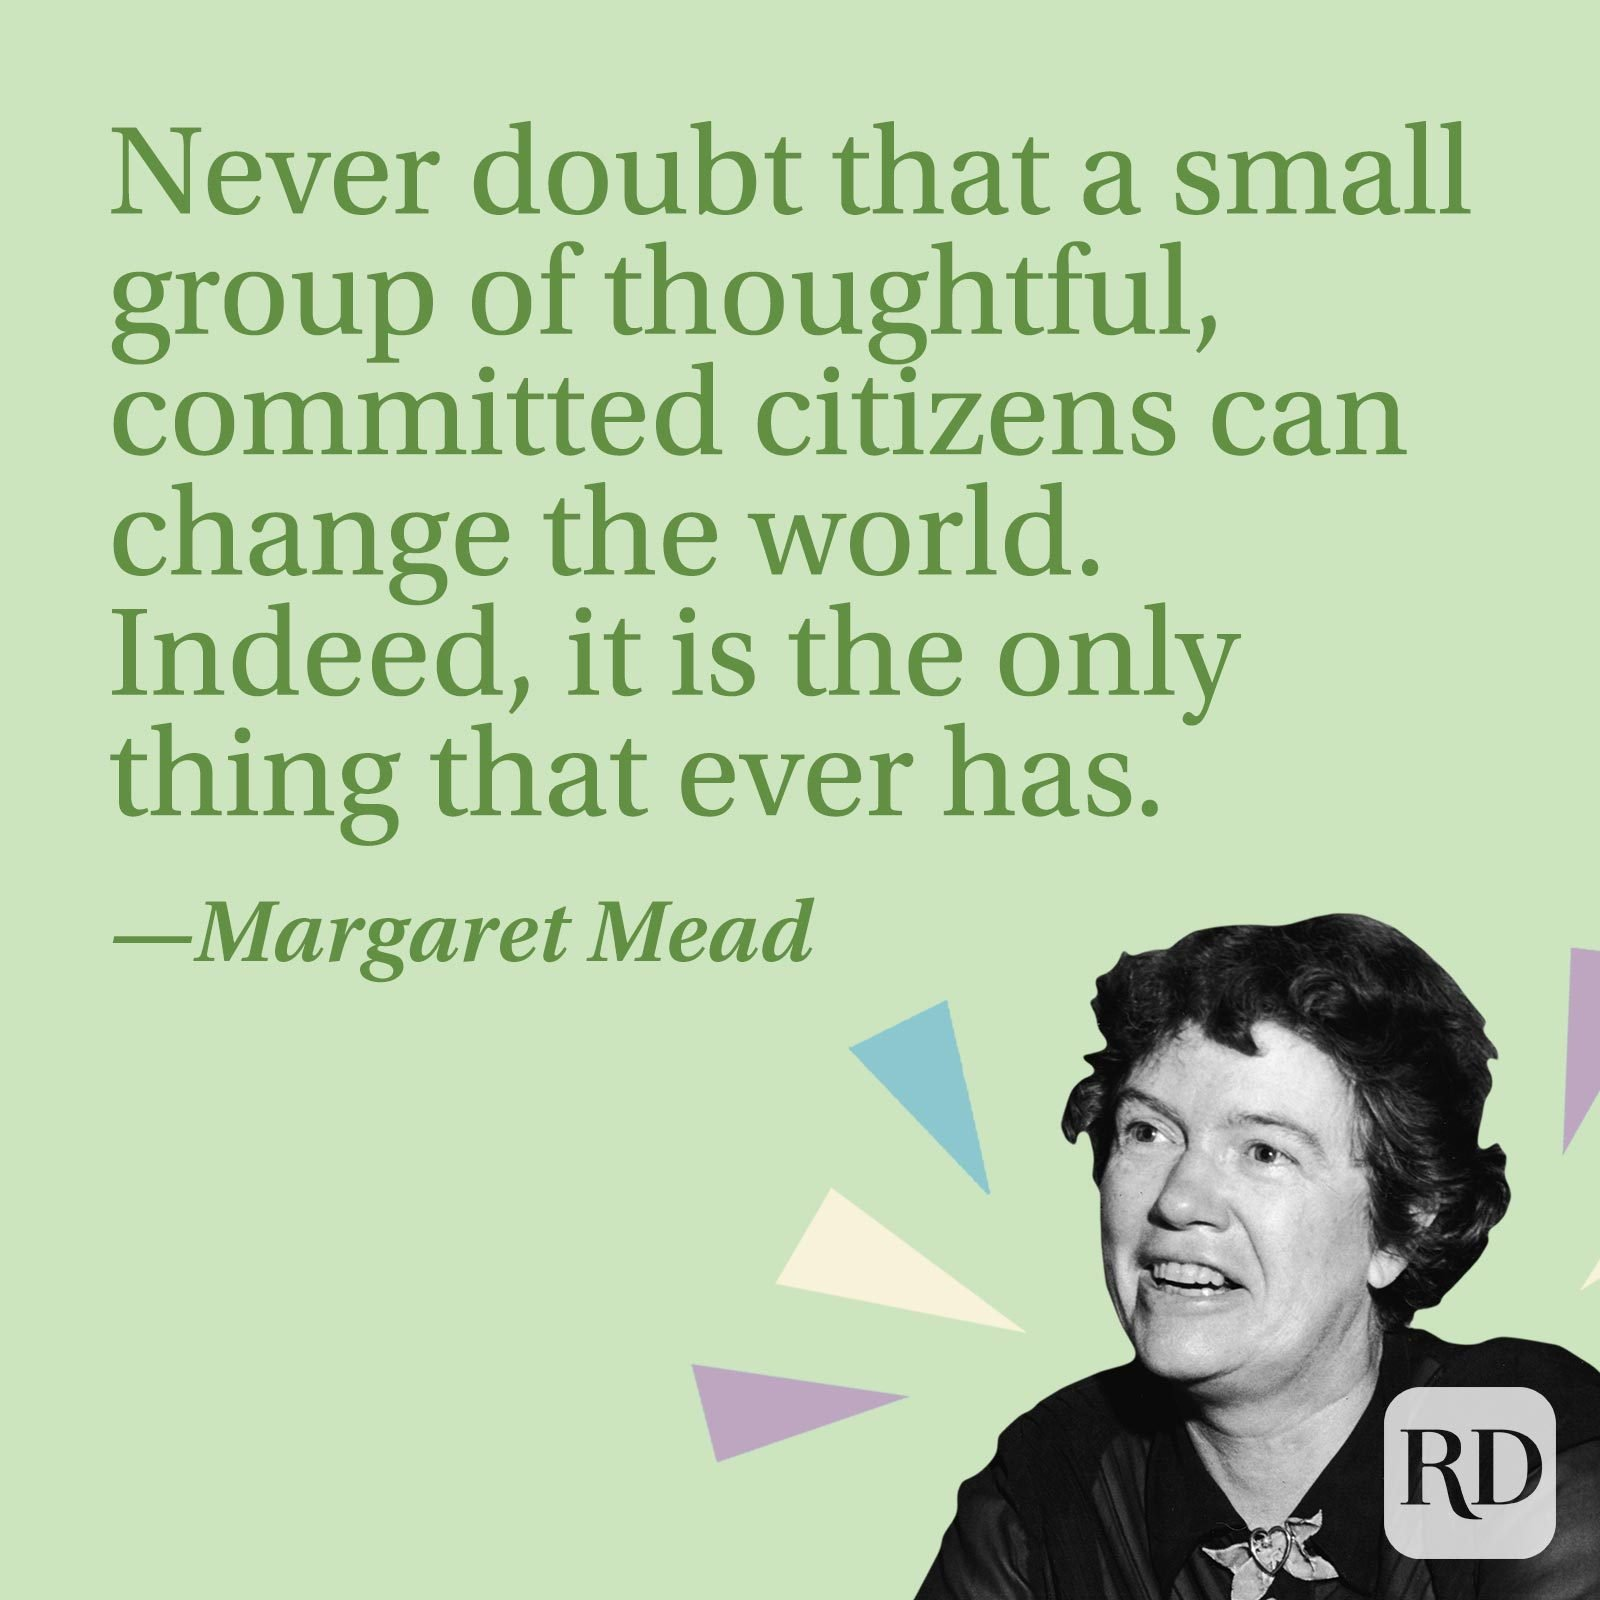 Never doubt that a small group of thoughtful, committed citizens can change the world. Indeed, it is the only thing that ever has.—Margaret Mead